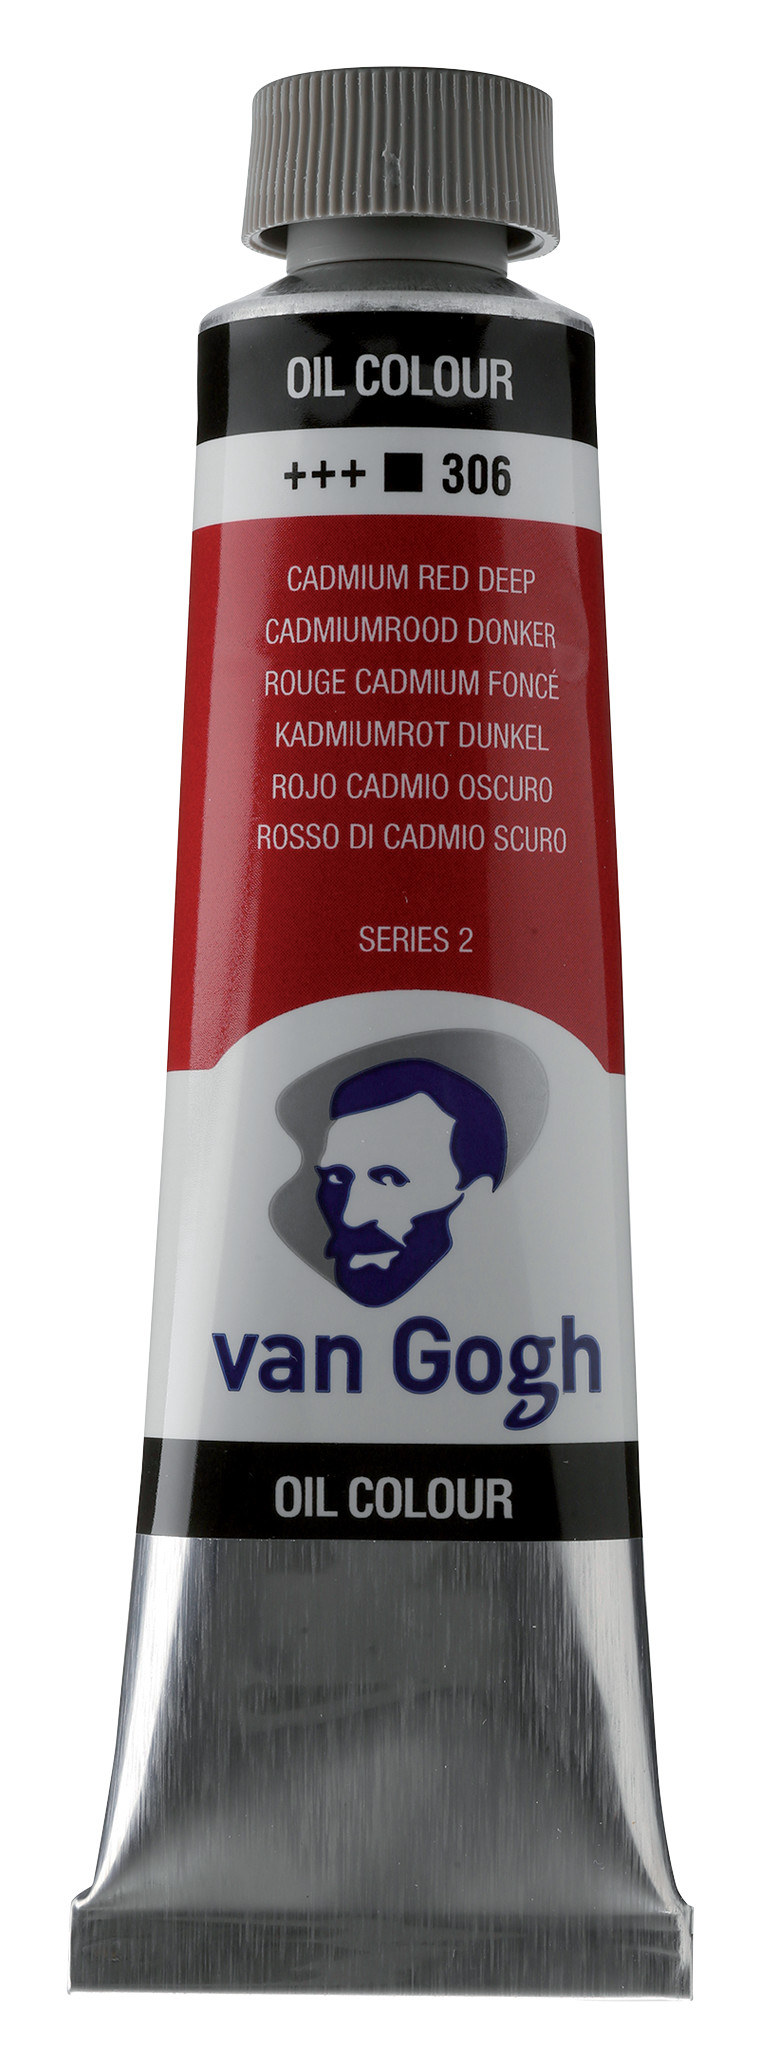 Van Gogh Oil Colour Tube 40 ml Cadmium Red Deep  306